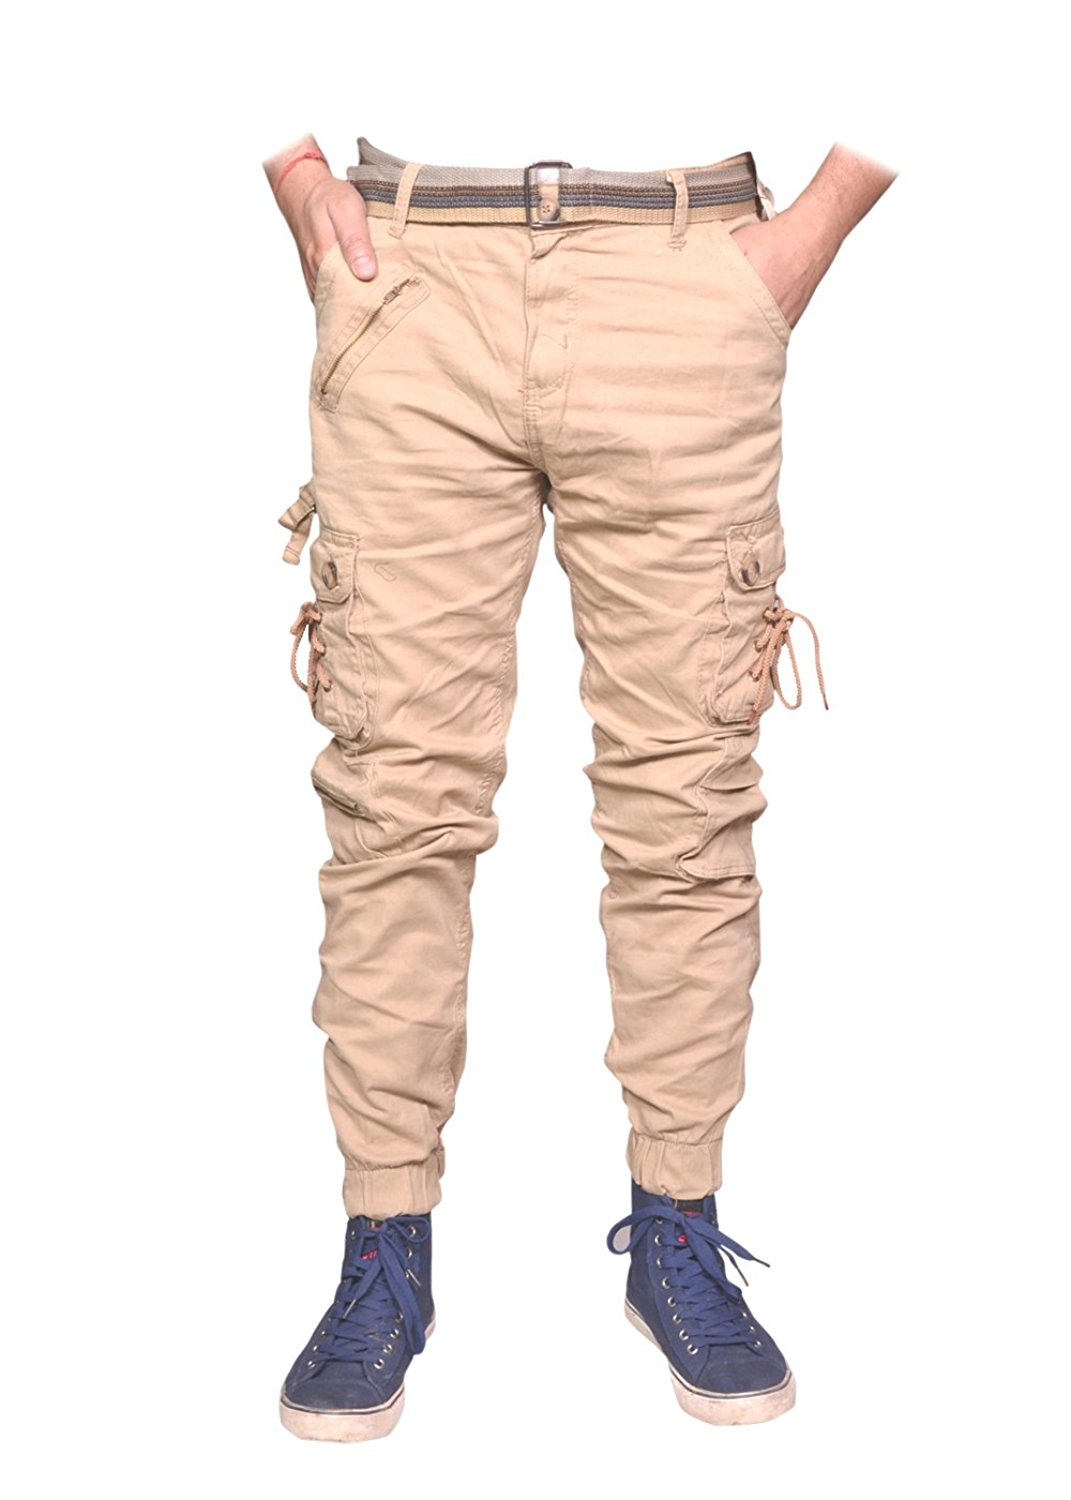 Men's Cotton Cargo Solid Pants | Zipper Cargo Jogger Pants | Men's Cotton Cargo Pants | Cotton Solid Relaxed Fit Zipper Cargo Jogger Pants for MEN (Dori Style)